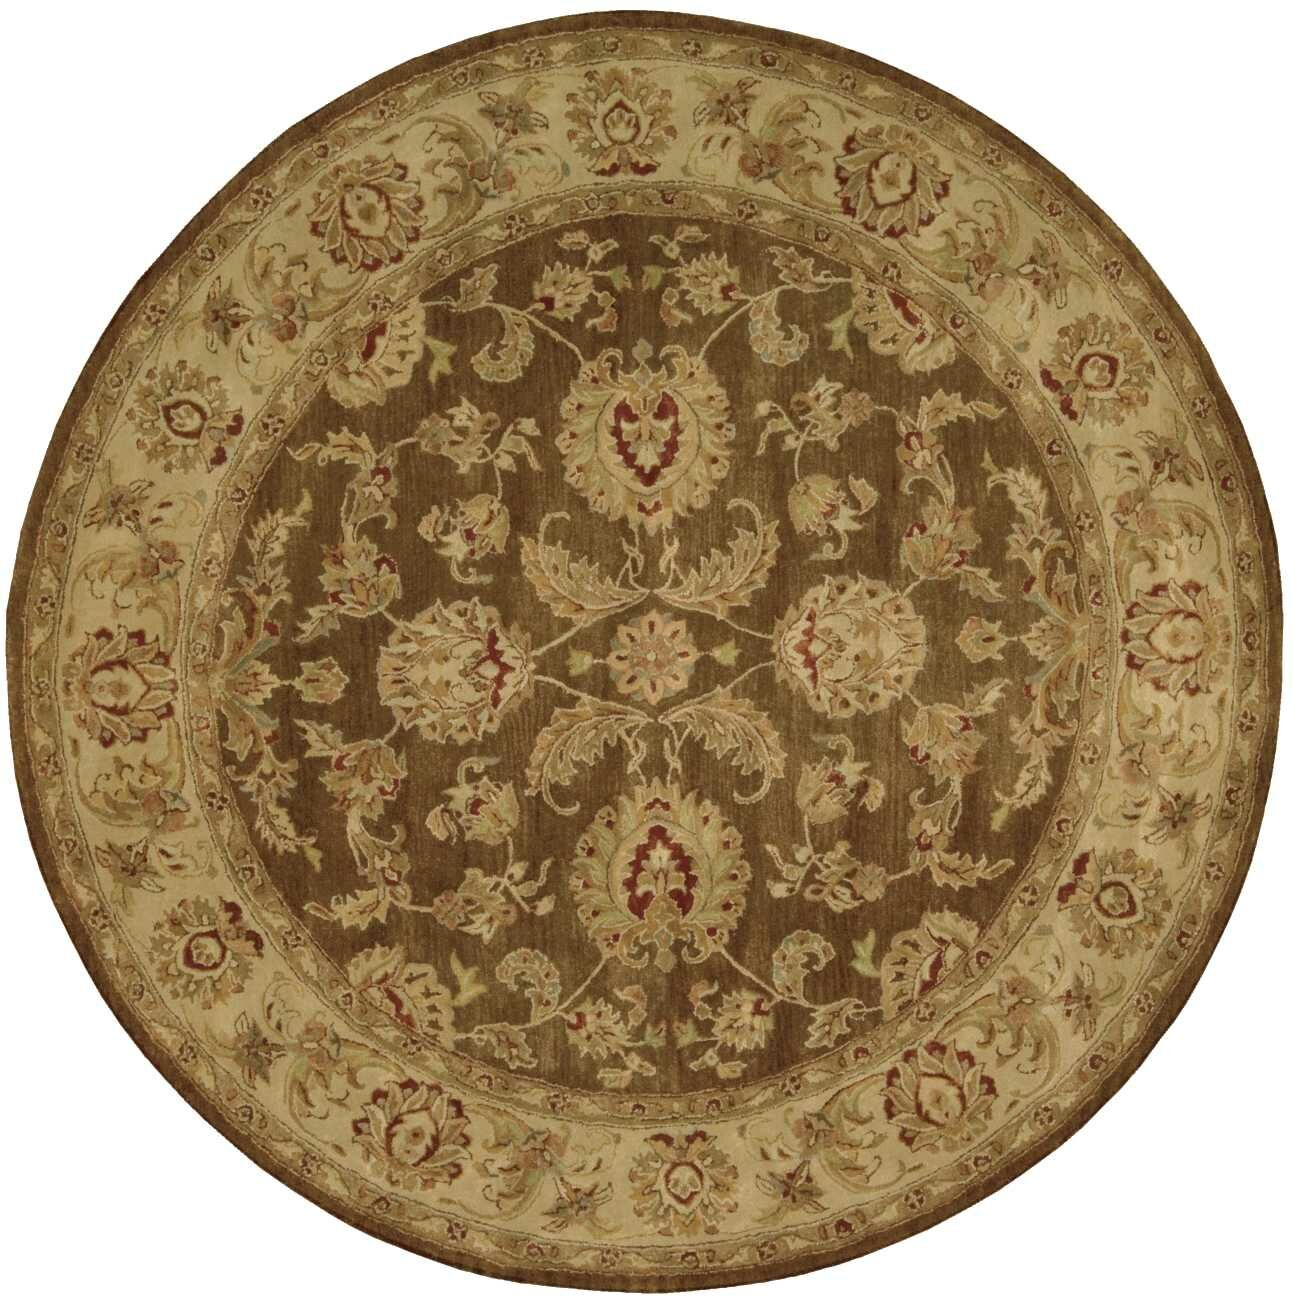 Delaware Hand-Tufted Brown Area Rug Rug Size: Round 8'